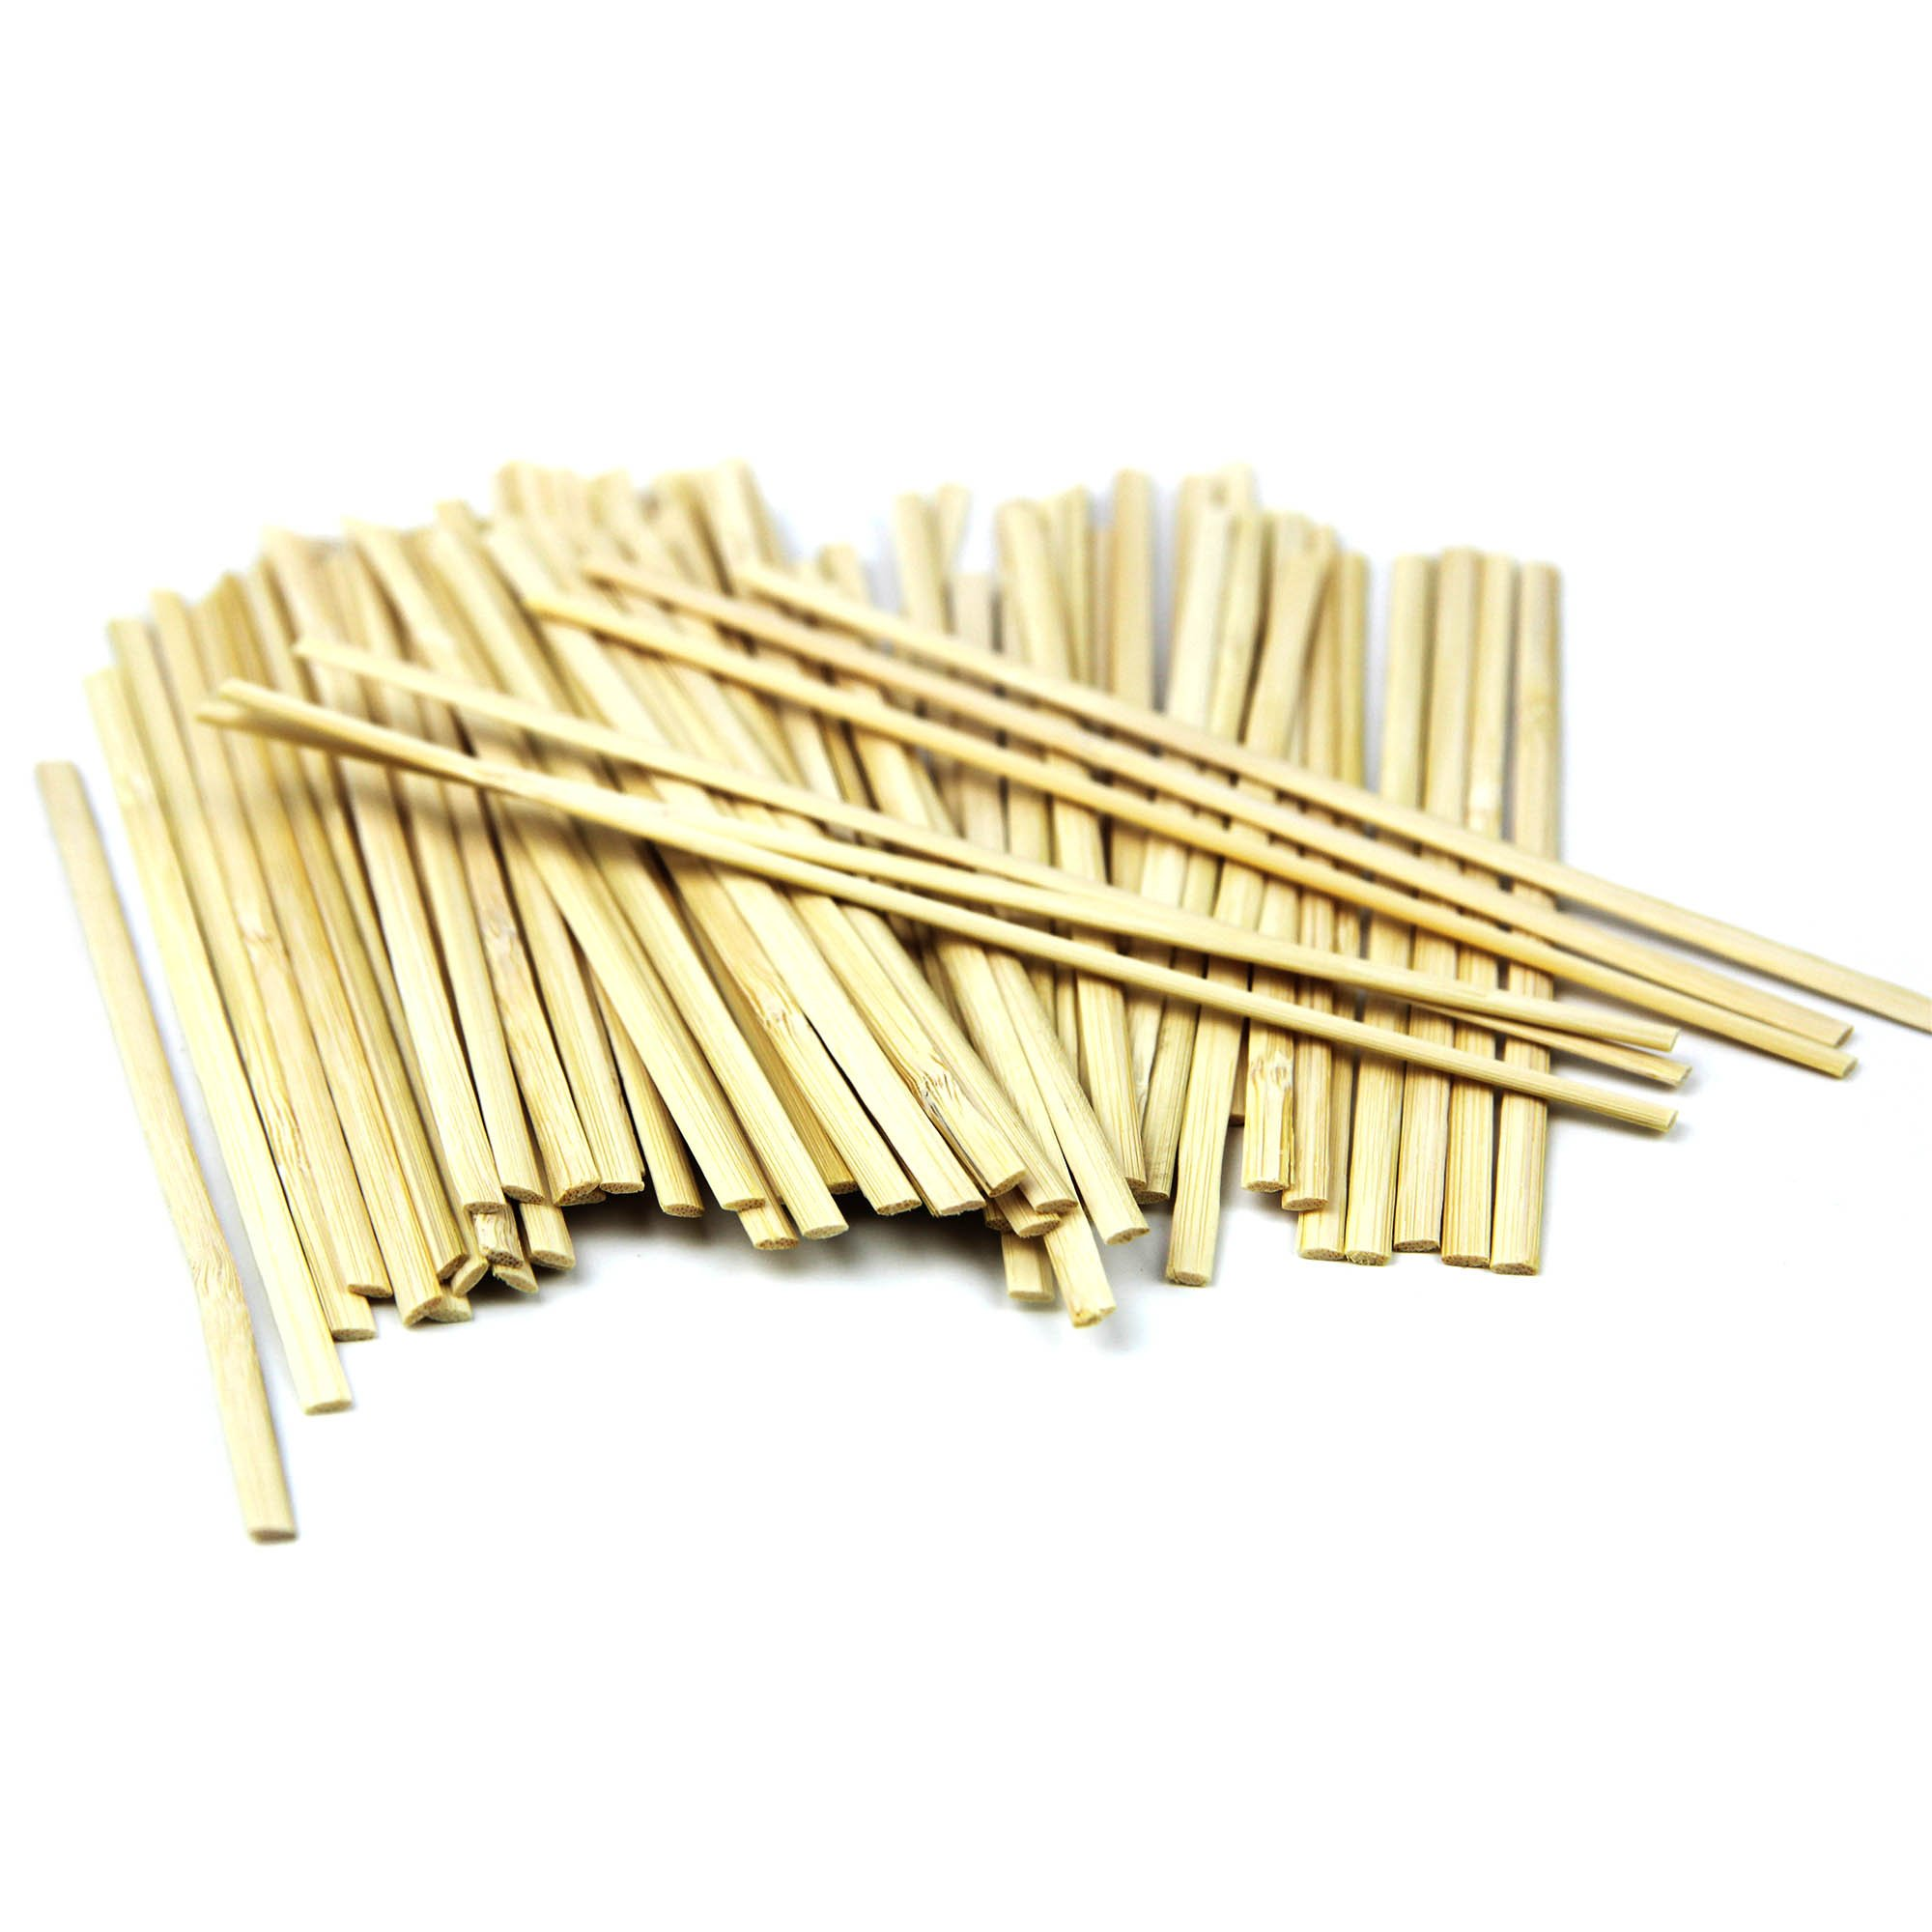 7'' Bamboo Wood Coffee Stir Sticks, Disposable Wooden Tea Drink Cocktail Mix Stirrers, Compostable Eco Friendly For Hot Cold Beverages - 1000 Pack by Fit Meal Prep (Image #5)